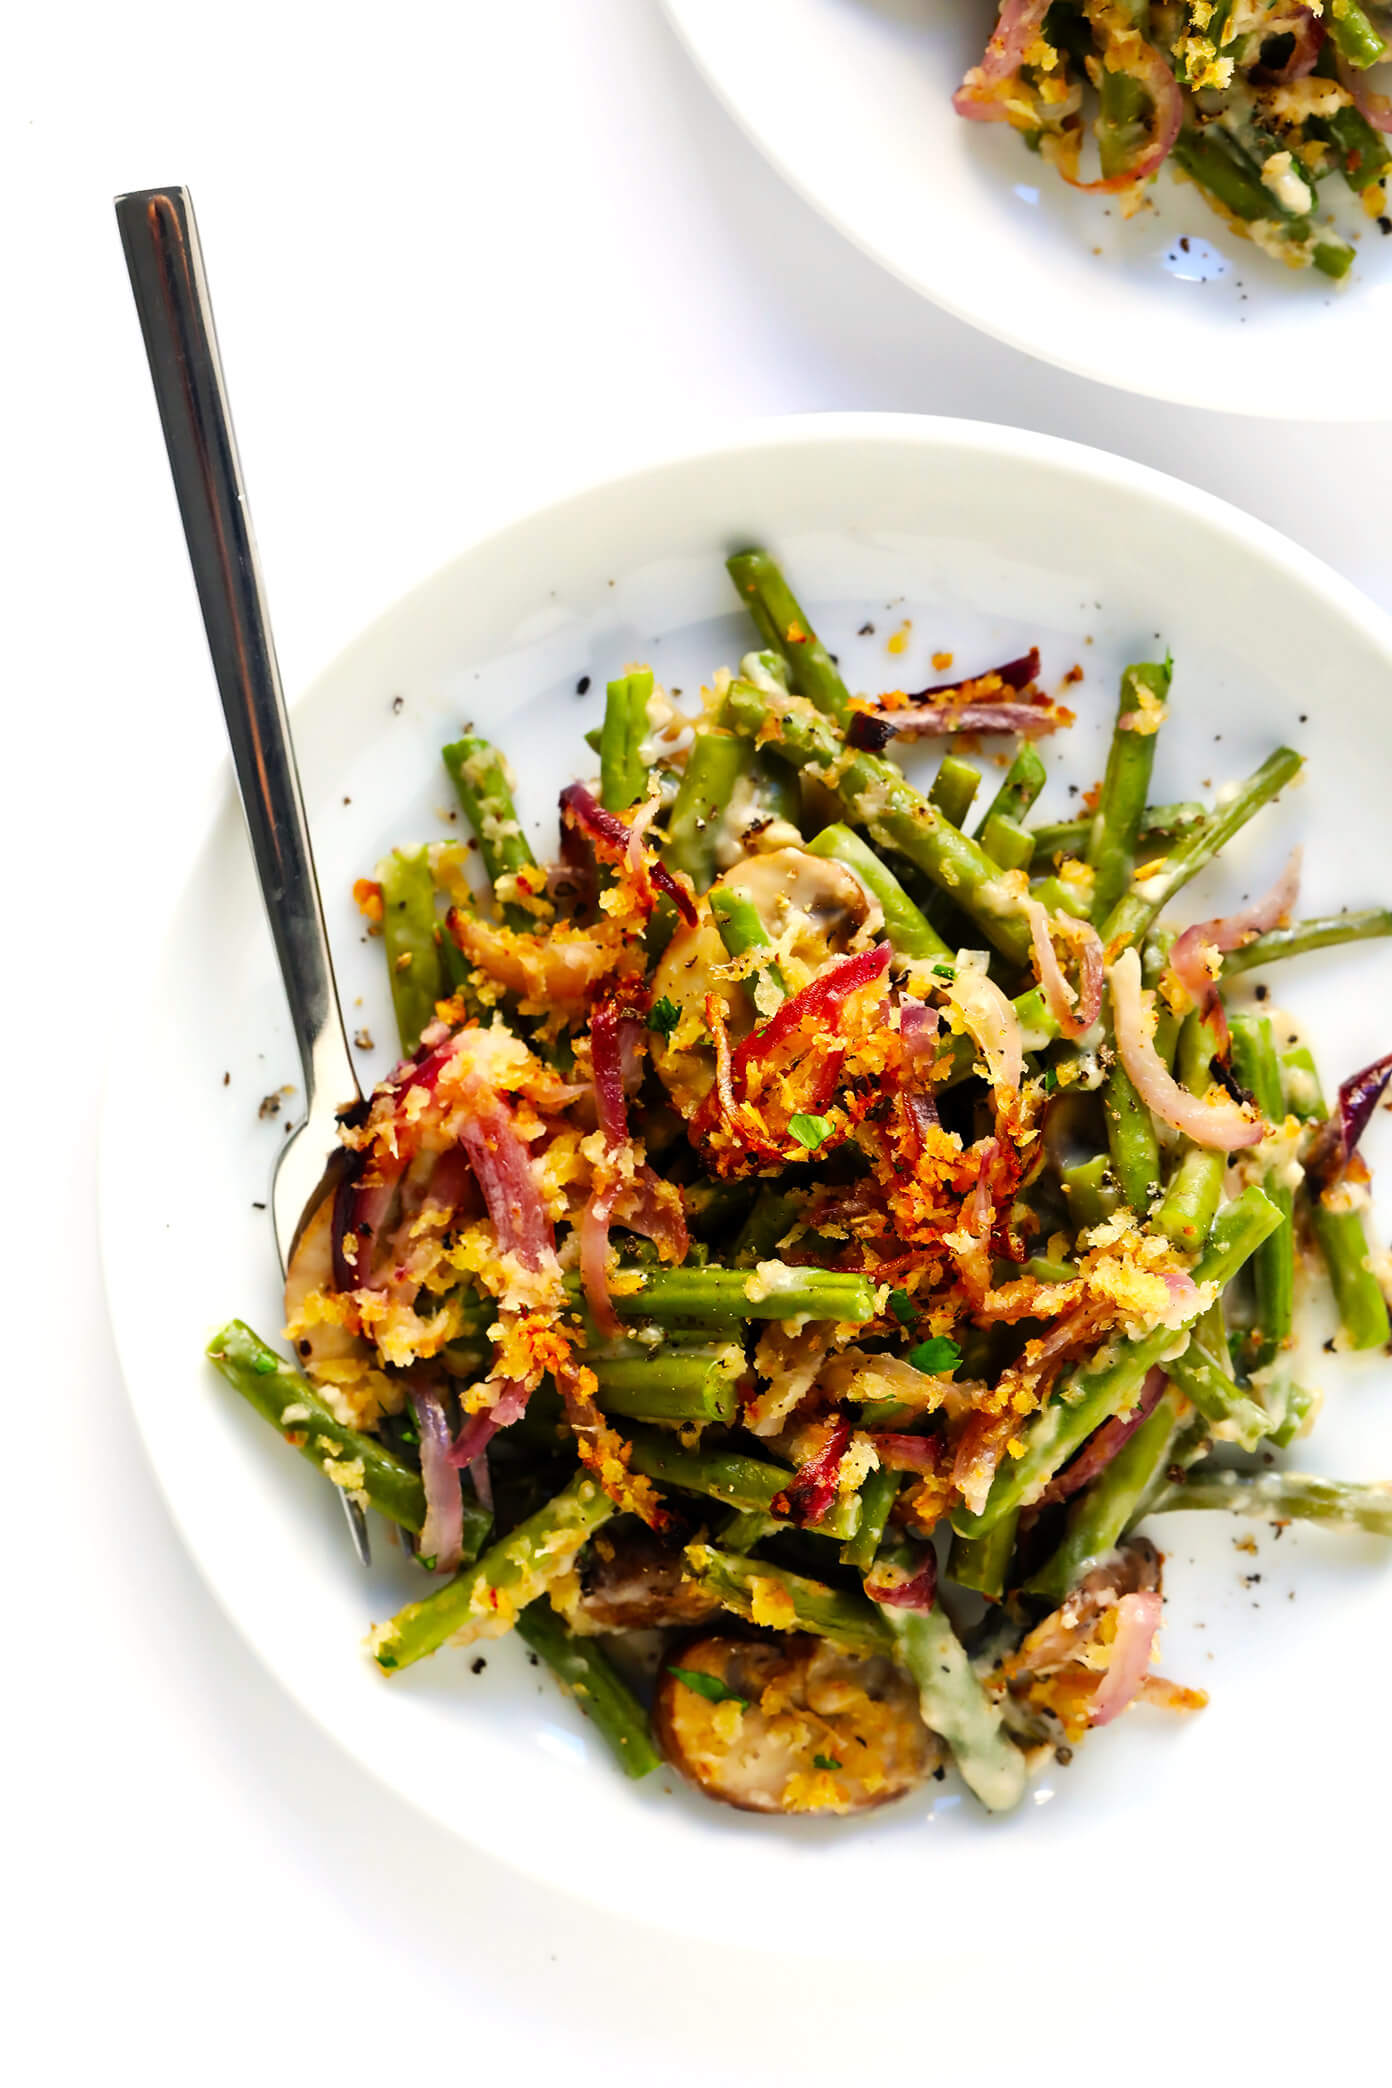 Healthy Green Bean Casserole Recipe with Crispy Onion Topping